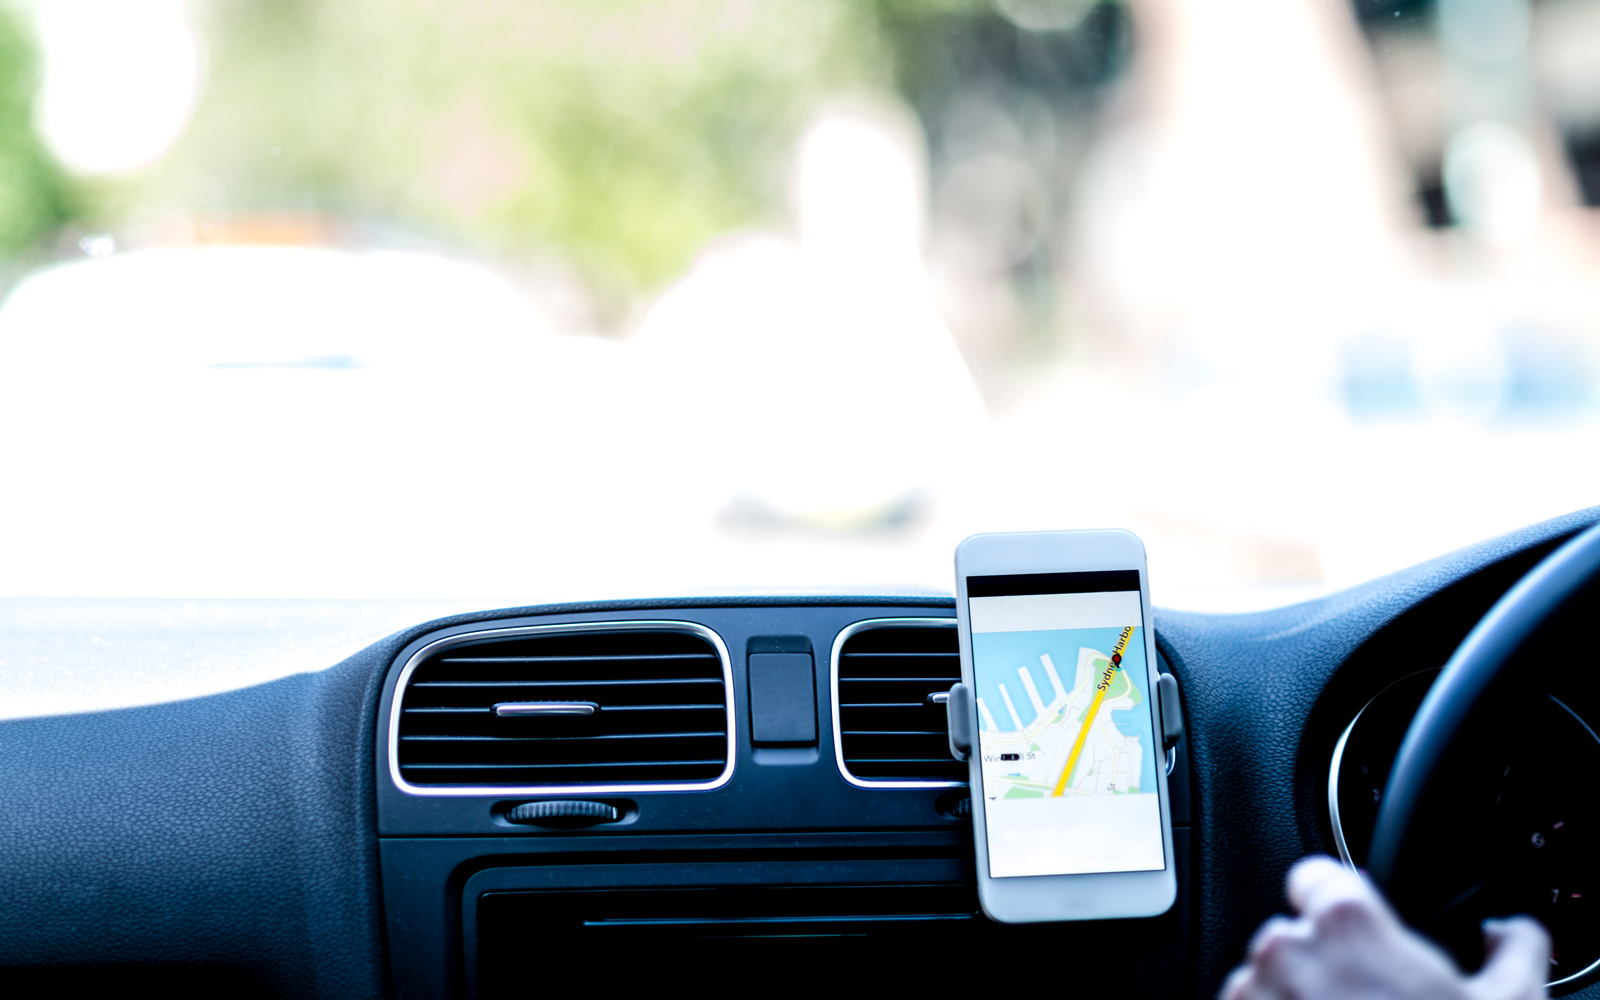 The Weirdest Items Uber Riders Have Left Behind